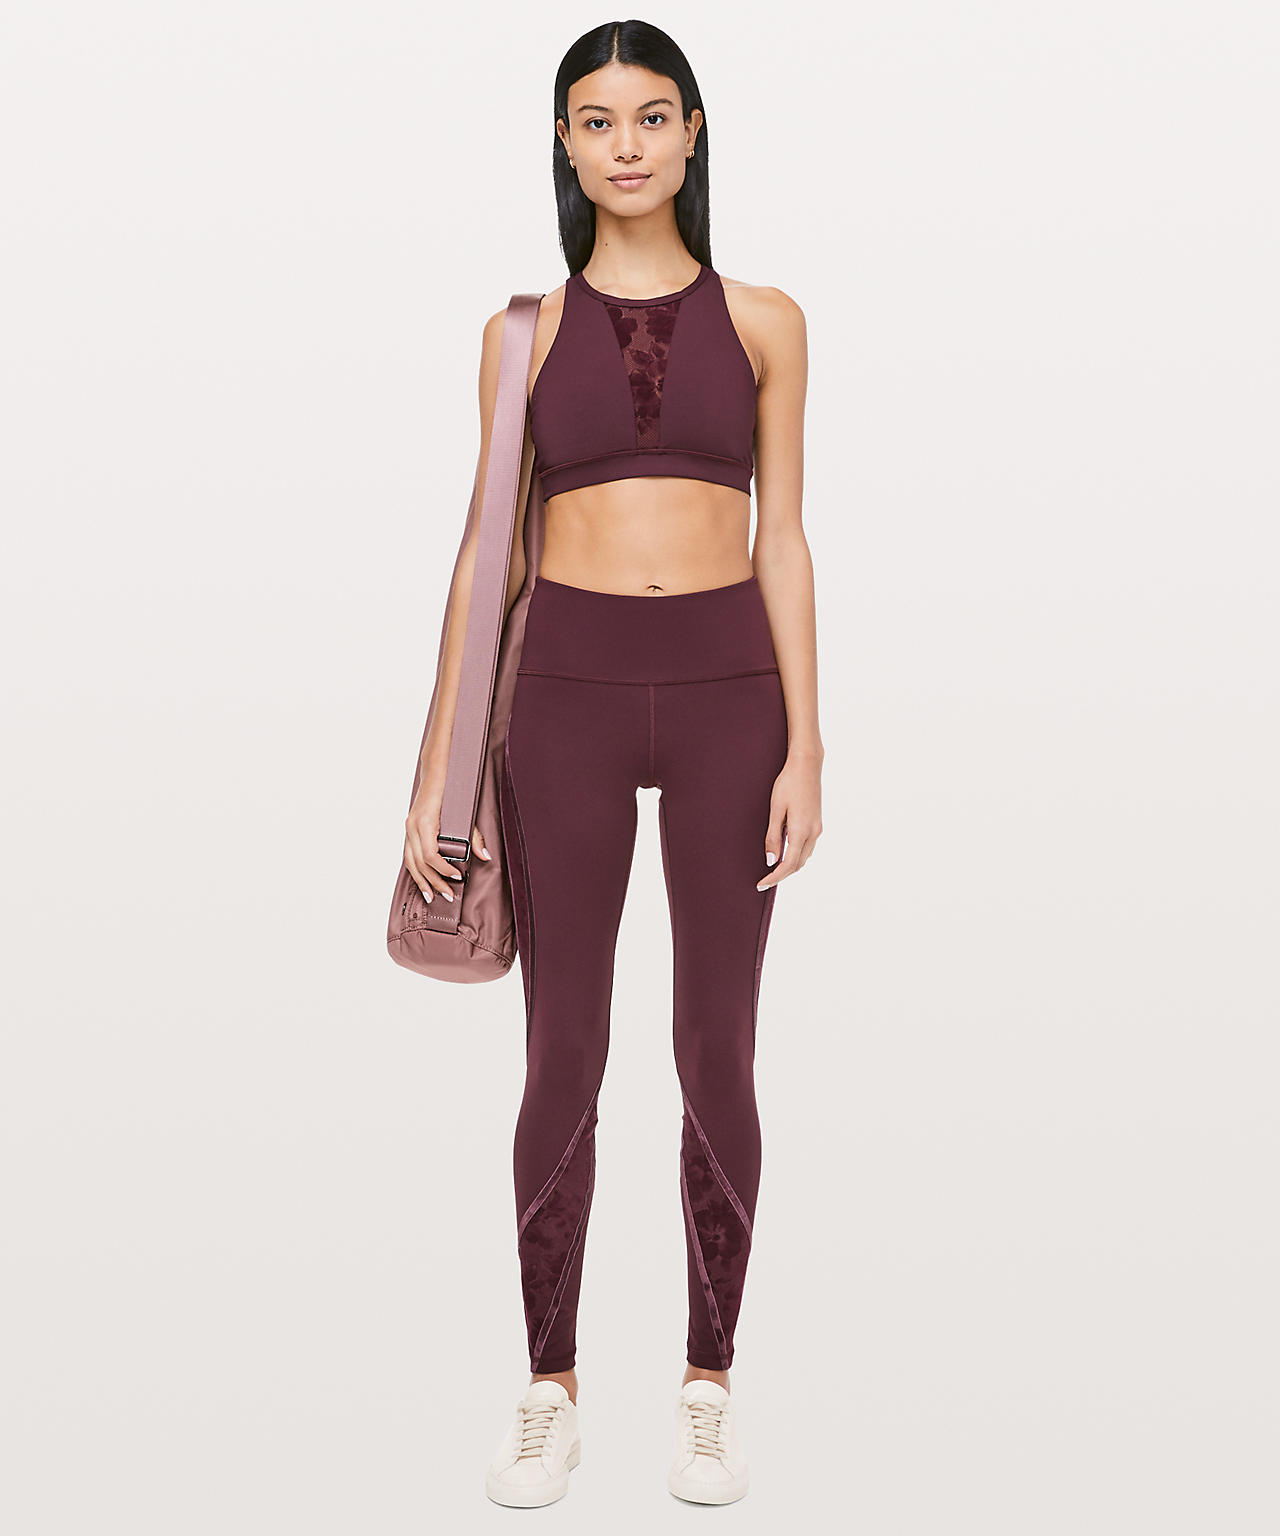 Workout Clothes - Last, but not least, athleisure and workout clothes! I love getting and giving new workout clothes that I know will last and make the person feel good in! Many of my clothes that I workout in are from Target, Poshmark or TJ Maxx but when it comes to gifts and holidays, I love receiving a nice pair of leggings, bra, jacket, shorts, new shoes, etc! It just makes them more special that way (somehow). Some of my favorite splurge brands: Lululemon, Athleta, Alo, Outdoor Voices, Beyond Yoga, Splits 59.Favorite places in Birmingham to grab my splurge clothes are: True40 and Eleven Eleven.Prices can range all over the place depending on what item you get - have fun with this! Gift cards are always a fun option too if you aren't sure what to get or even the perfect size for someone!